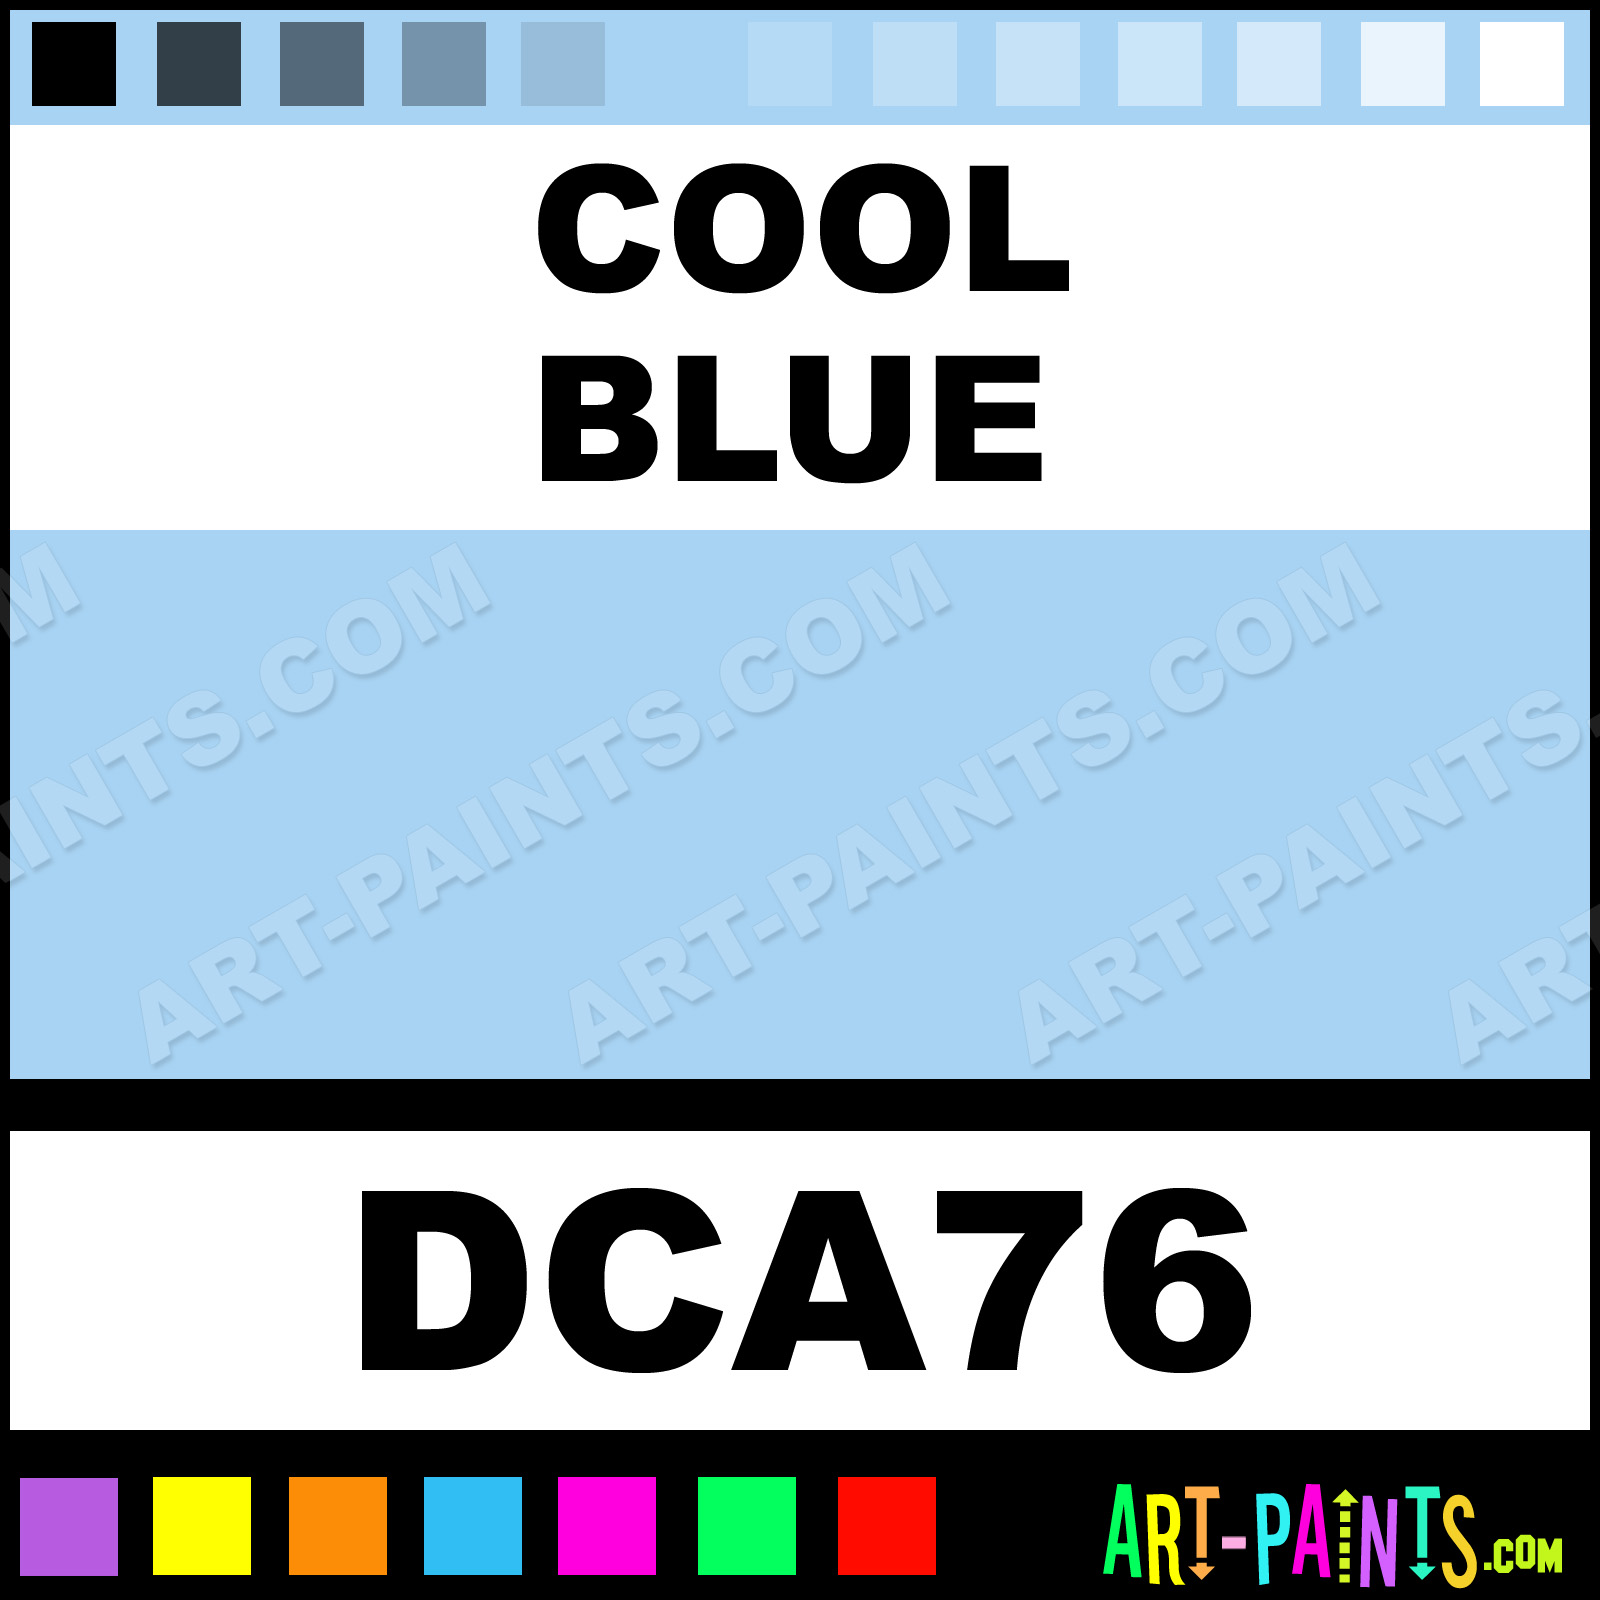 Cool Blue Paint Cool Blue Crafters Foam And Styrofoam Paints Dca76 Cool Blue